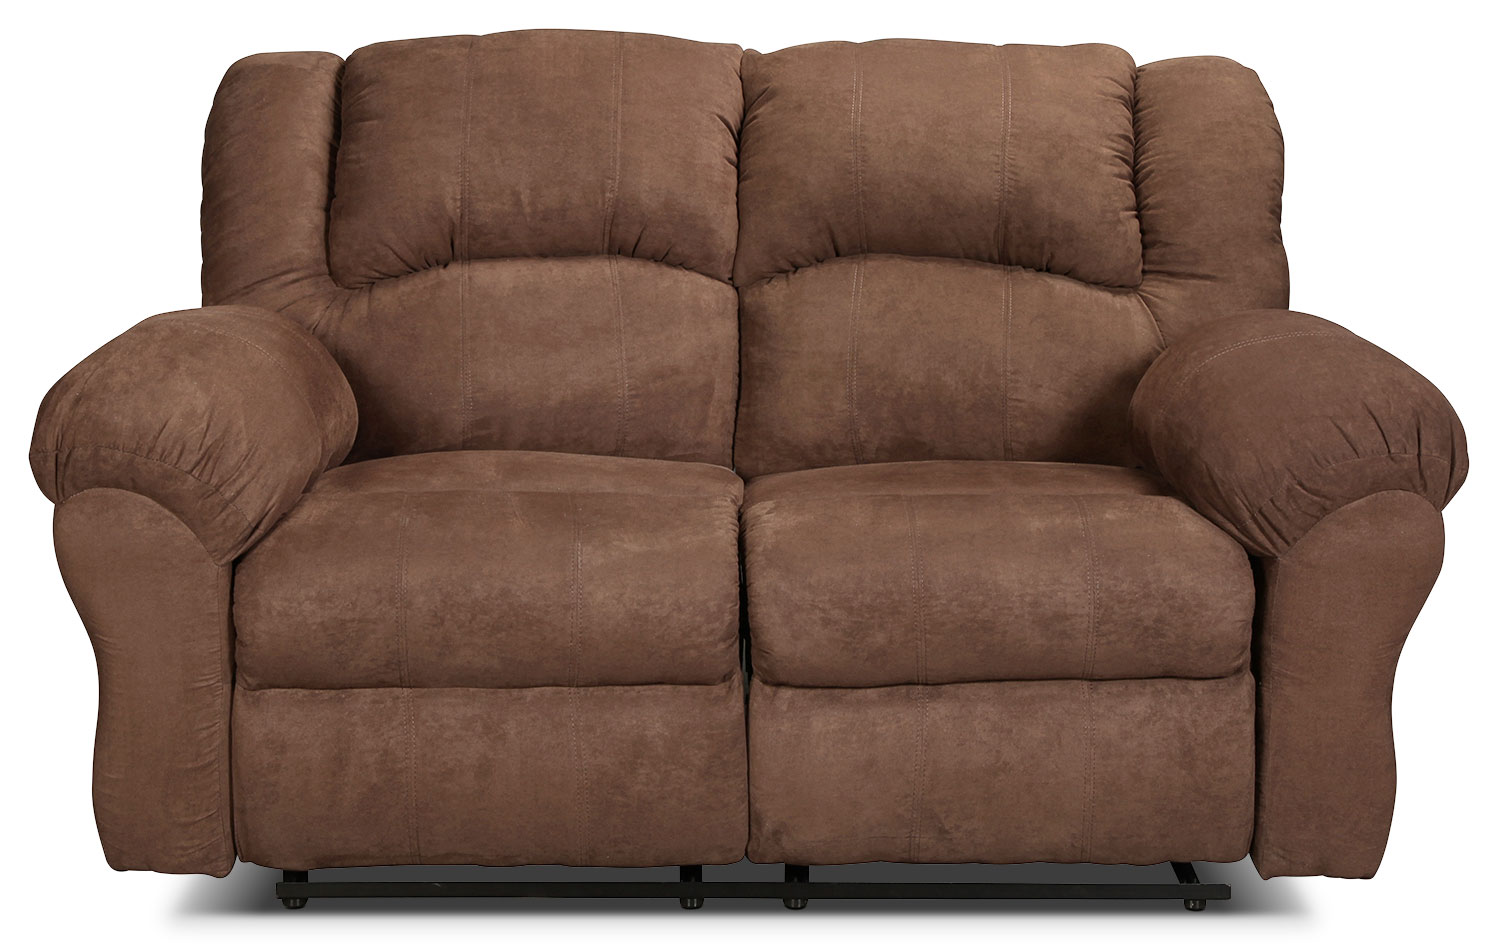 Living Room Furniture - Decker Reclining Loveseat - Chocolate